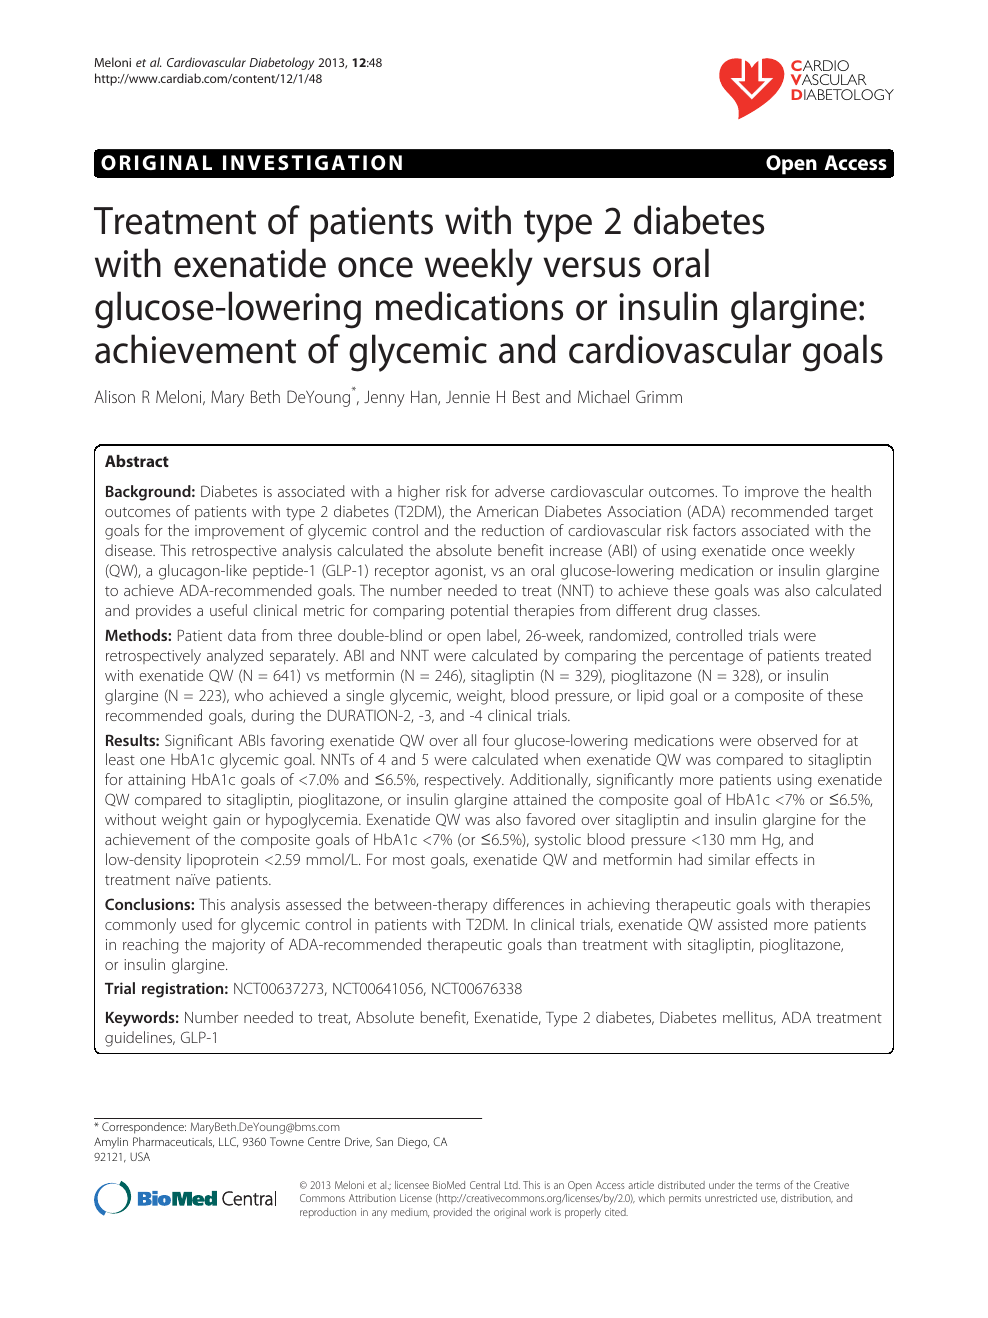 Treatment of patients with type 2 diabetes with exenatide